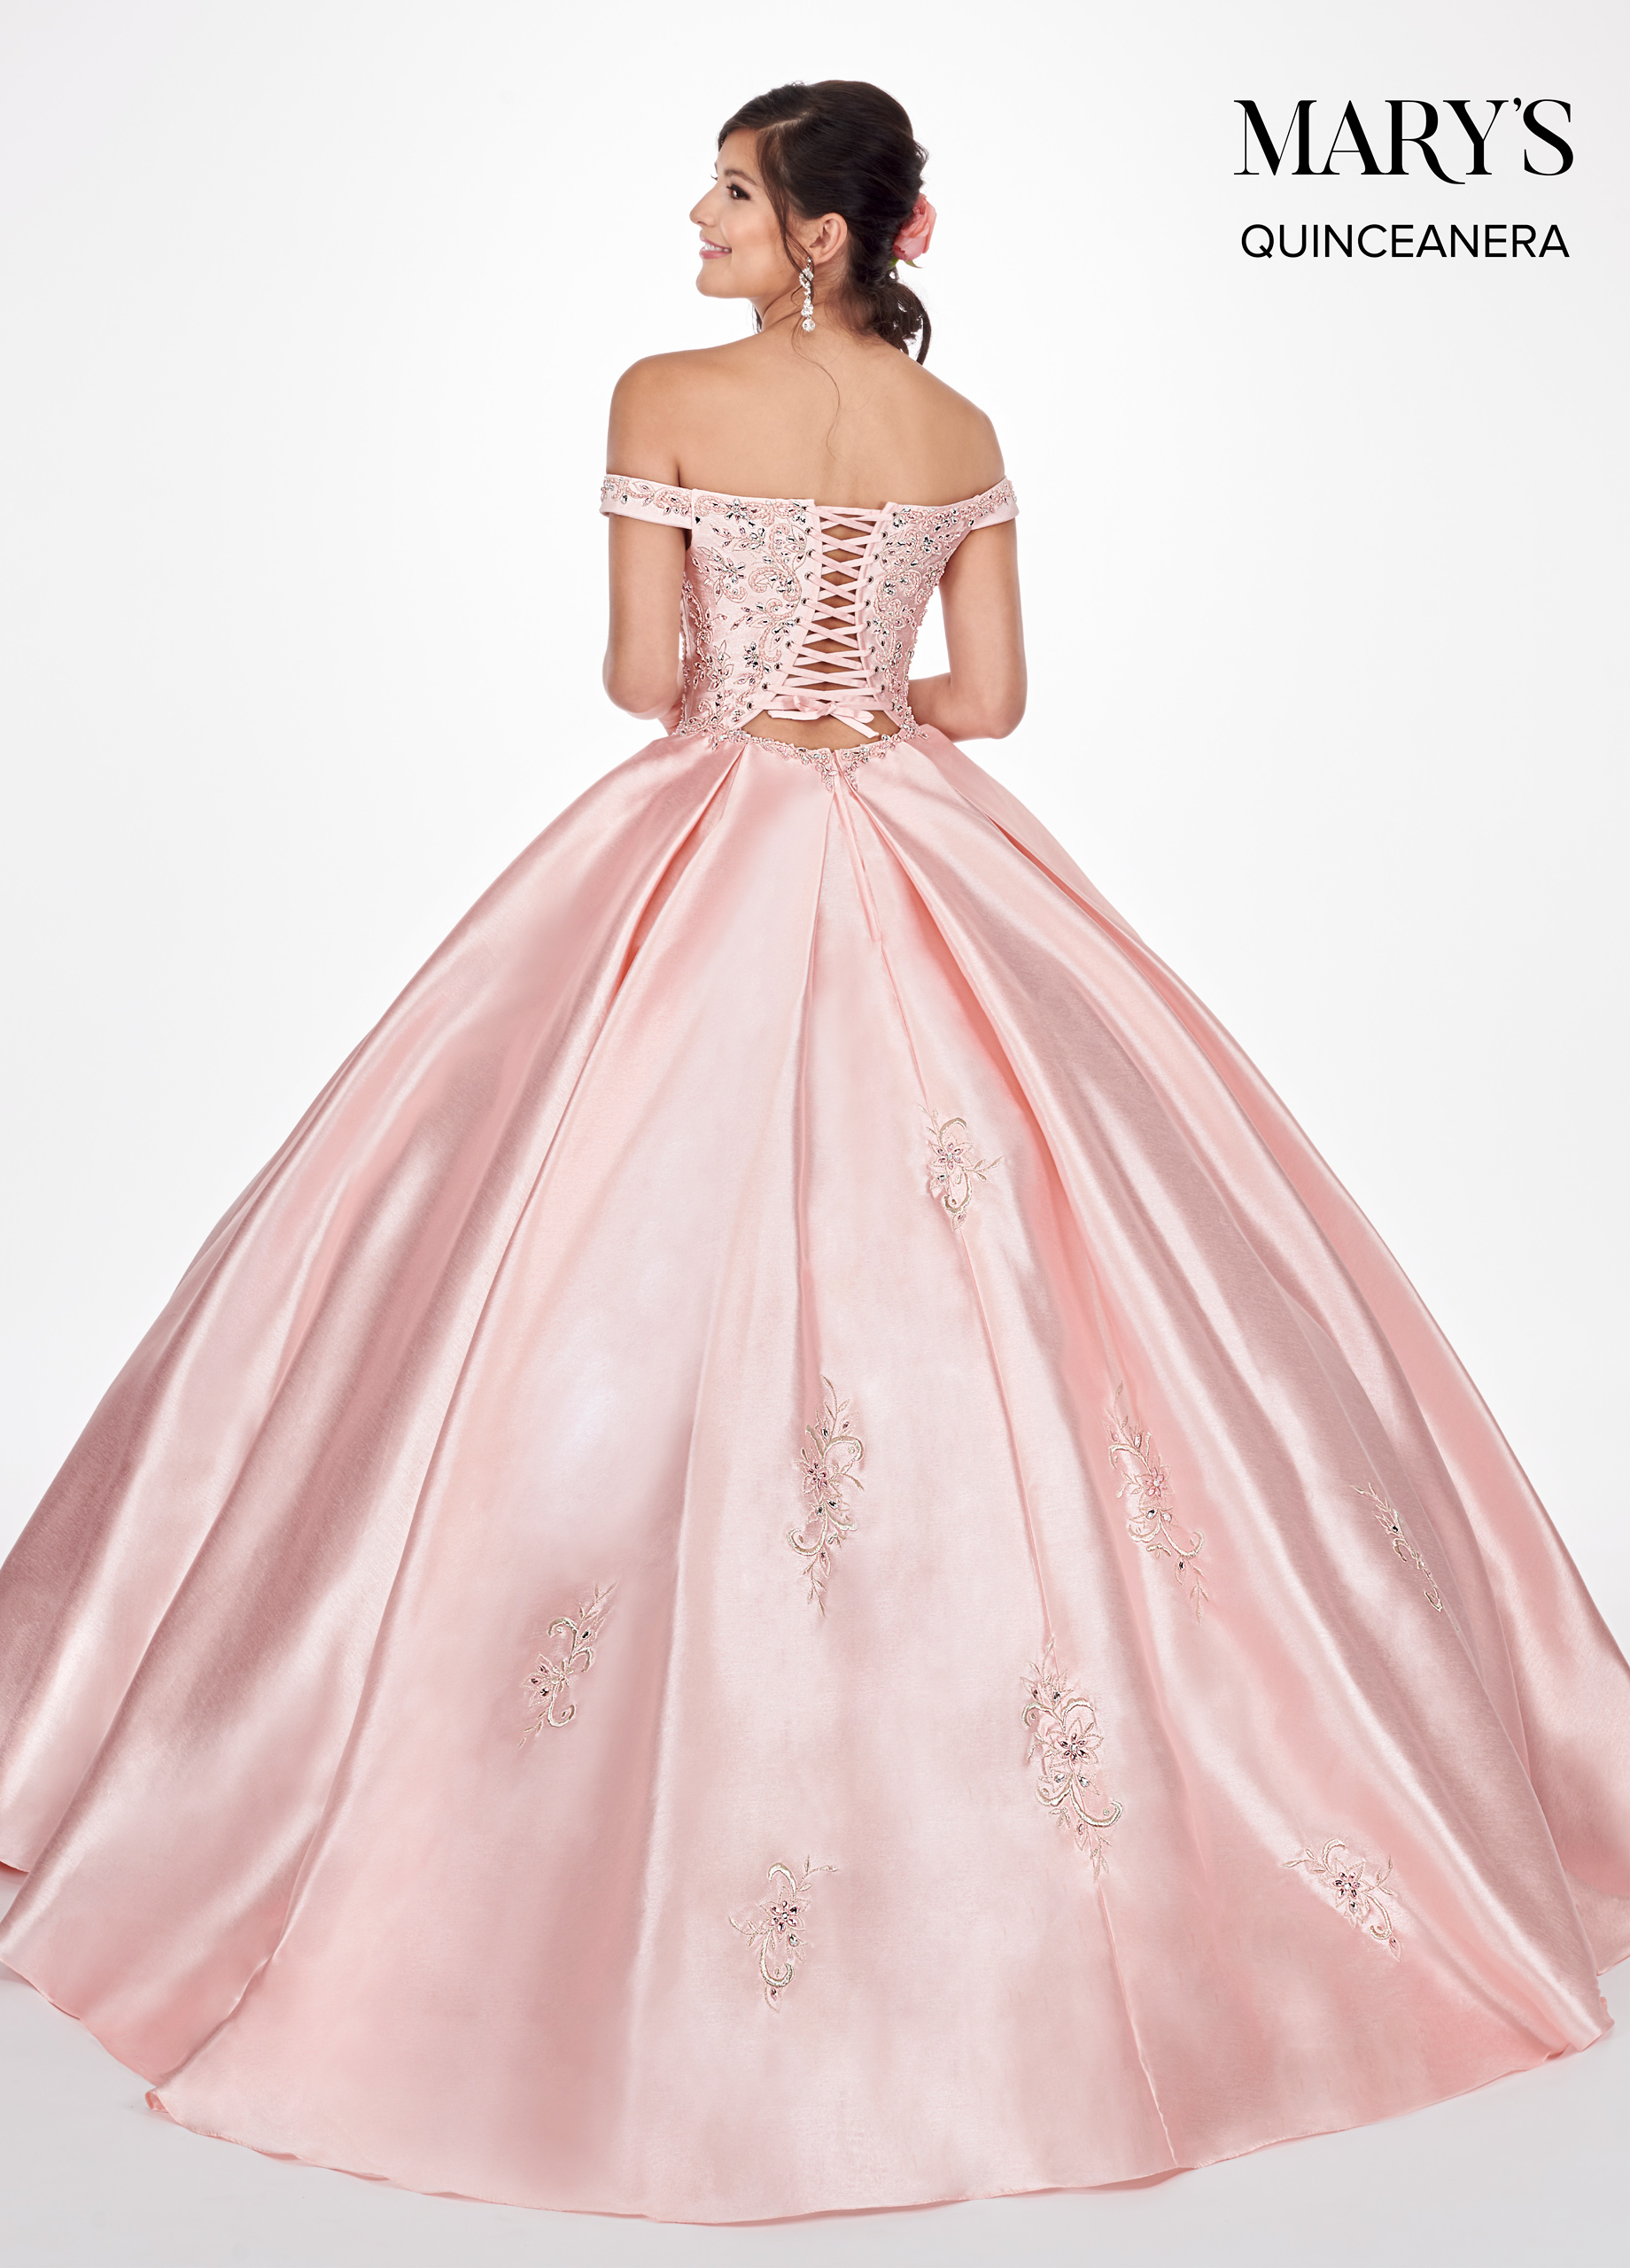 Marys Quinceanera Dresses | Mary's Quinceanera | Style - MQ1032